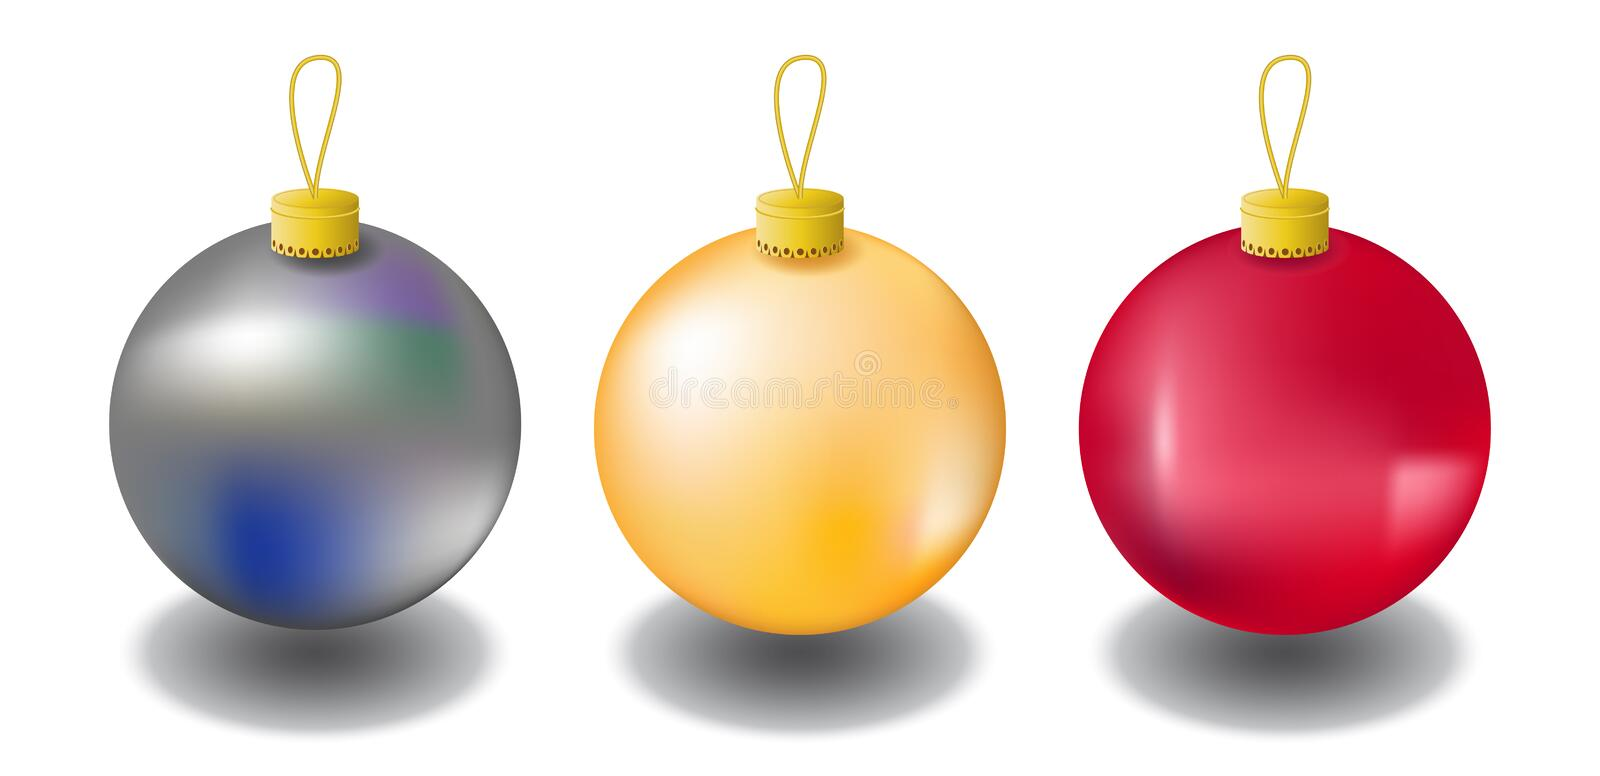 Christmas fir tree ornament isolated on white. Christmas tree balls in red, gold and silver colors. Realistic fir tree ornaments with shadow. Vector clipart stock illustration